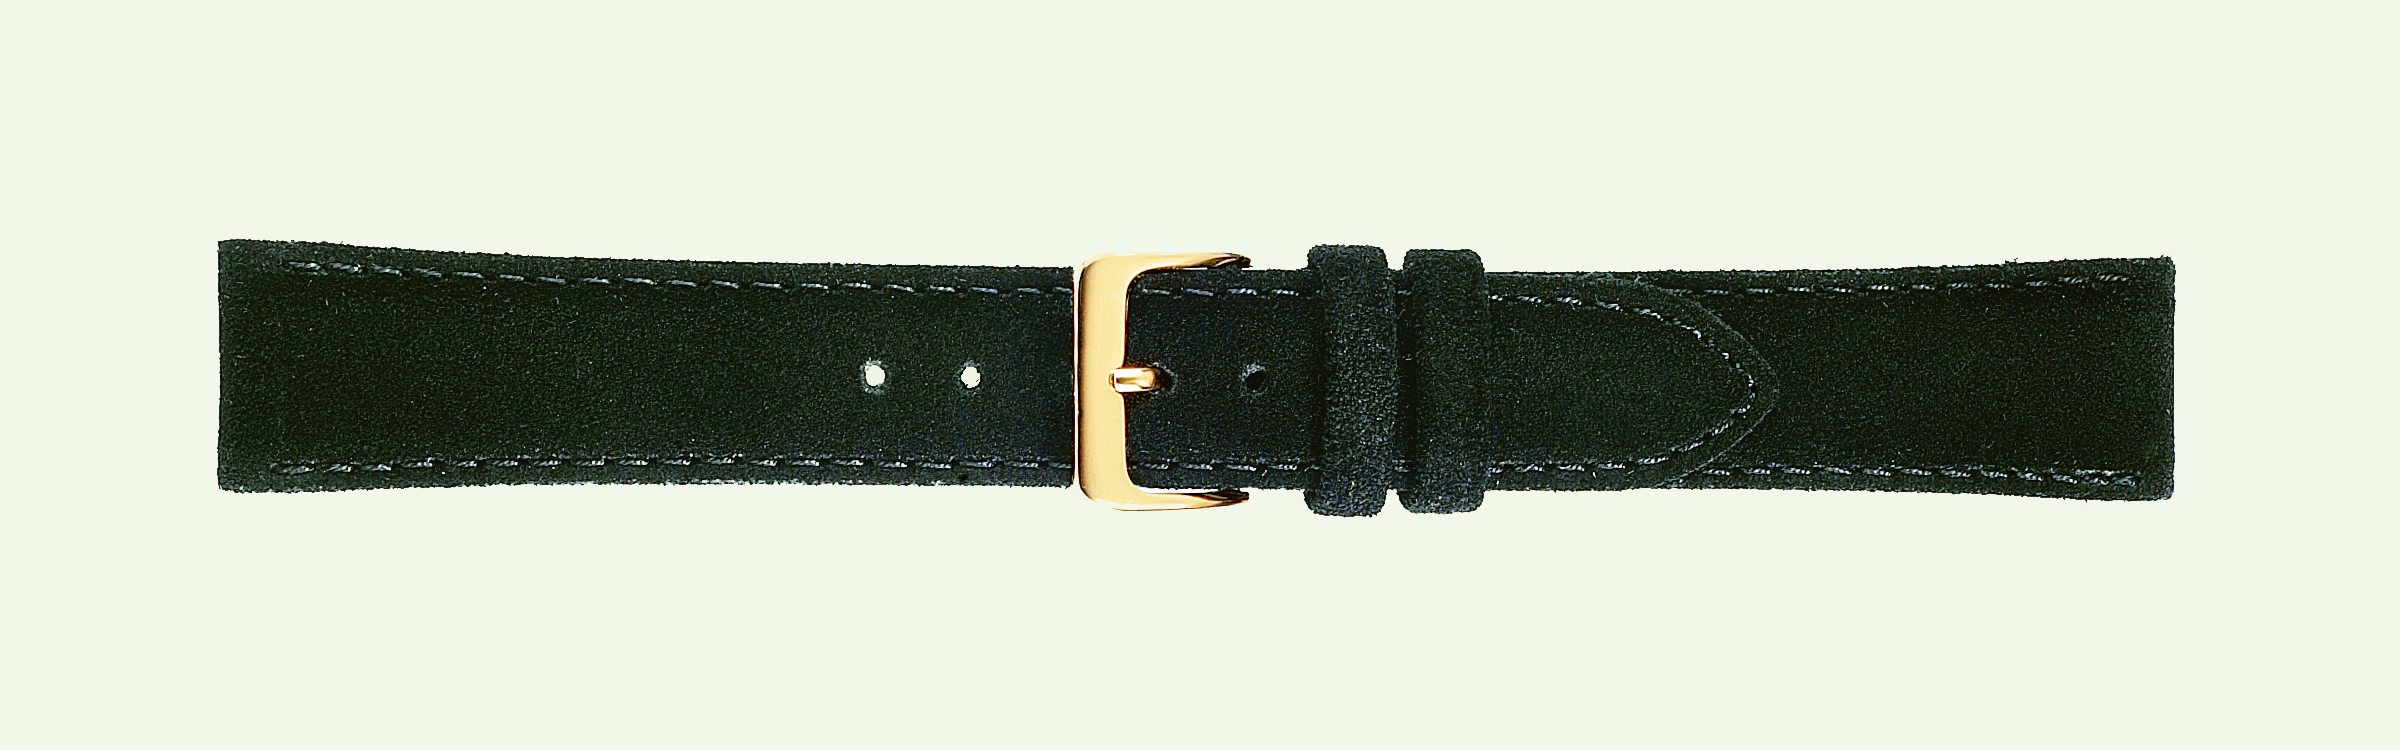 18MM Leather Band Black Suede-0